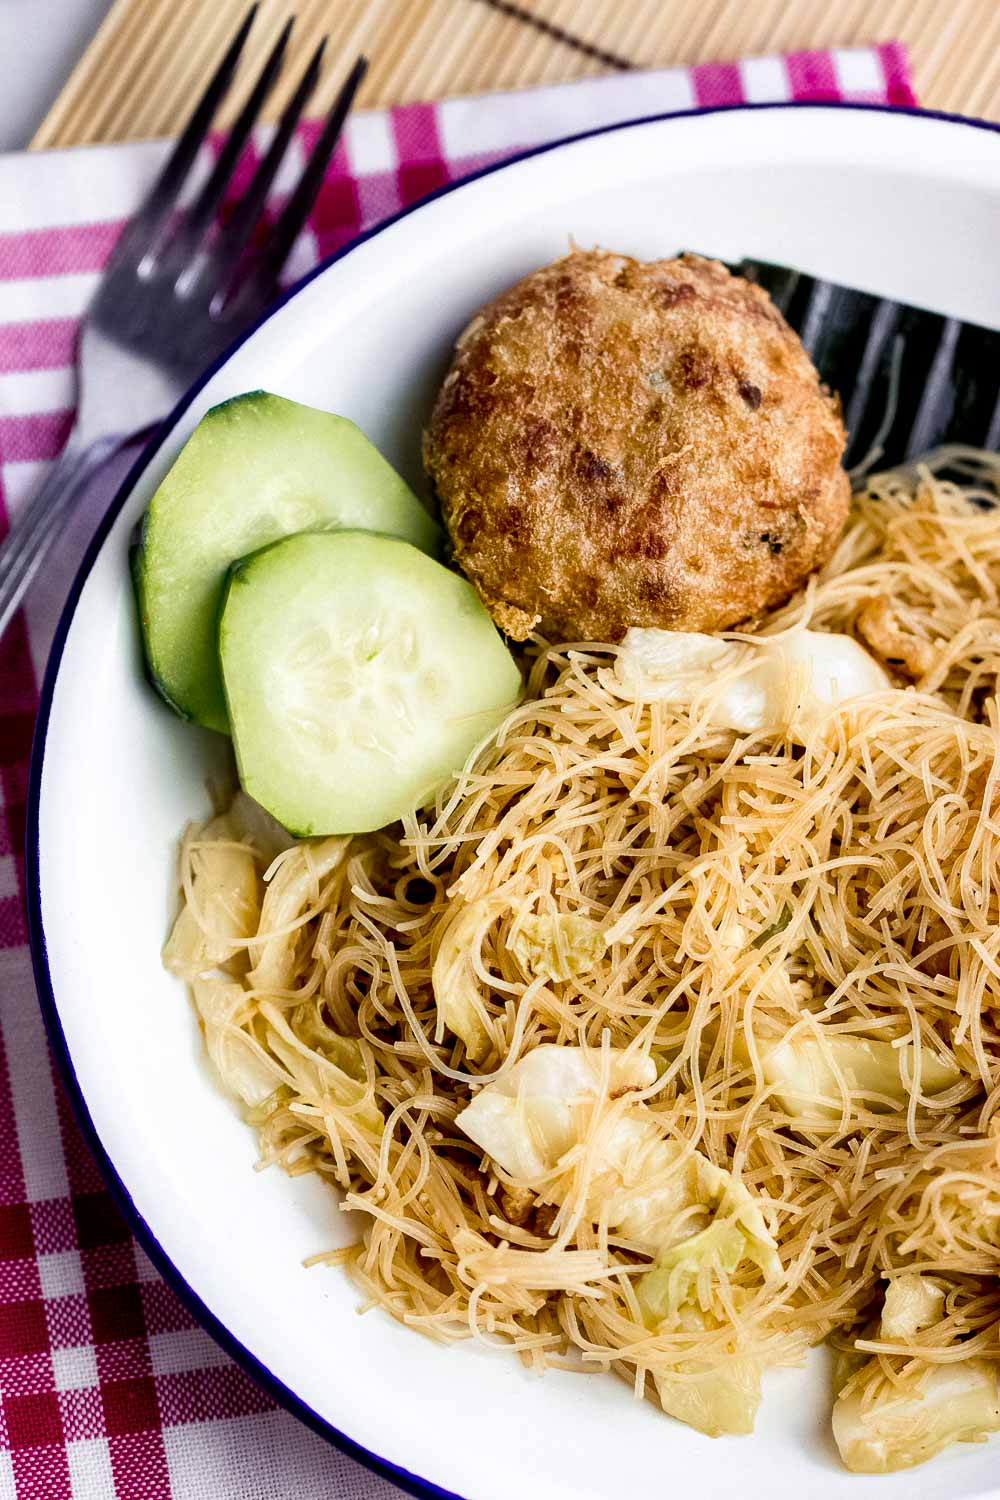 If you're looking for a super easy dish to try, this bihun goreng kampung or village-style fried rice vermicelli should be on your list! With just a few ingredients, this can be ready in less than 30 minutes. Be sure to double or triple the quantity to feed a crowd.